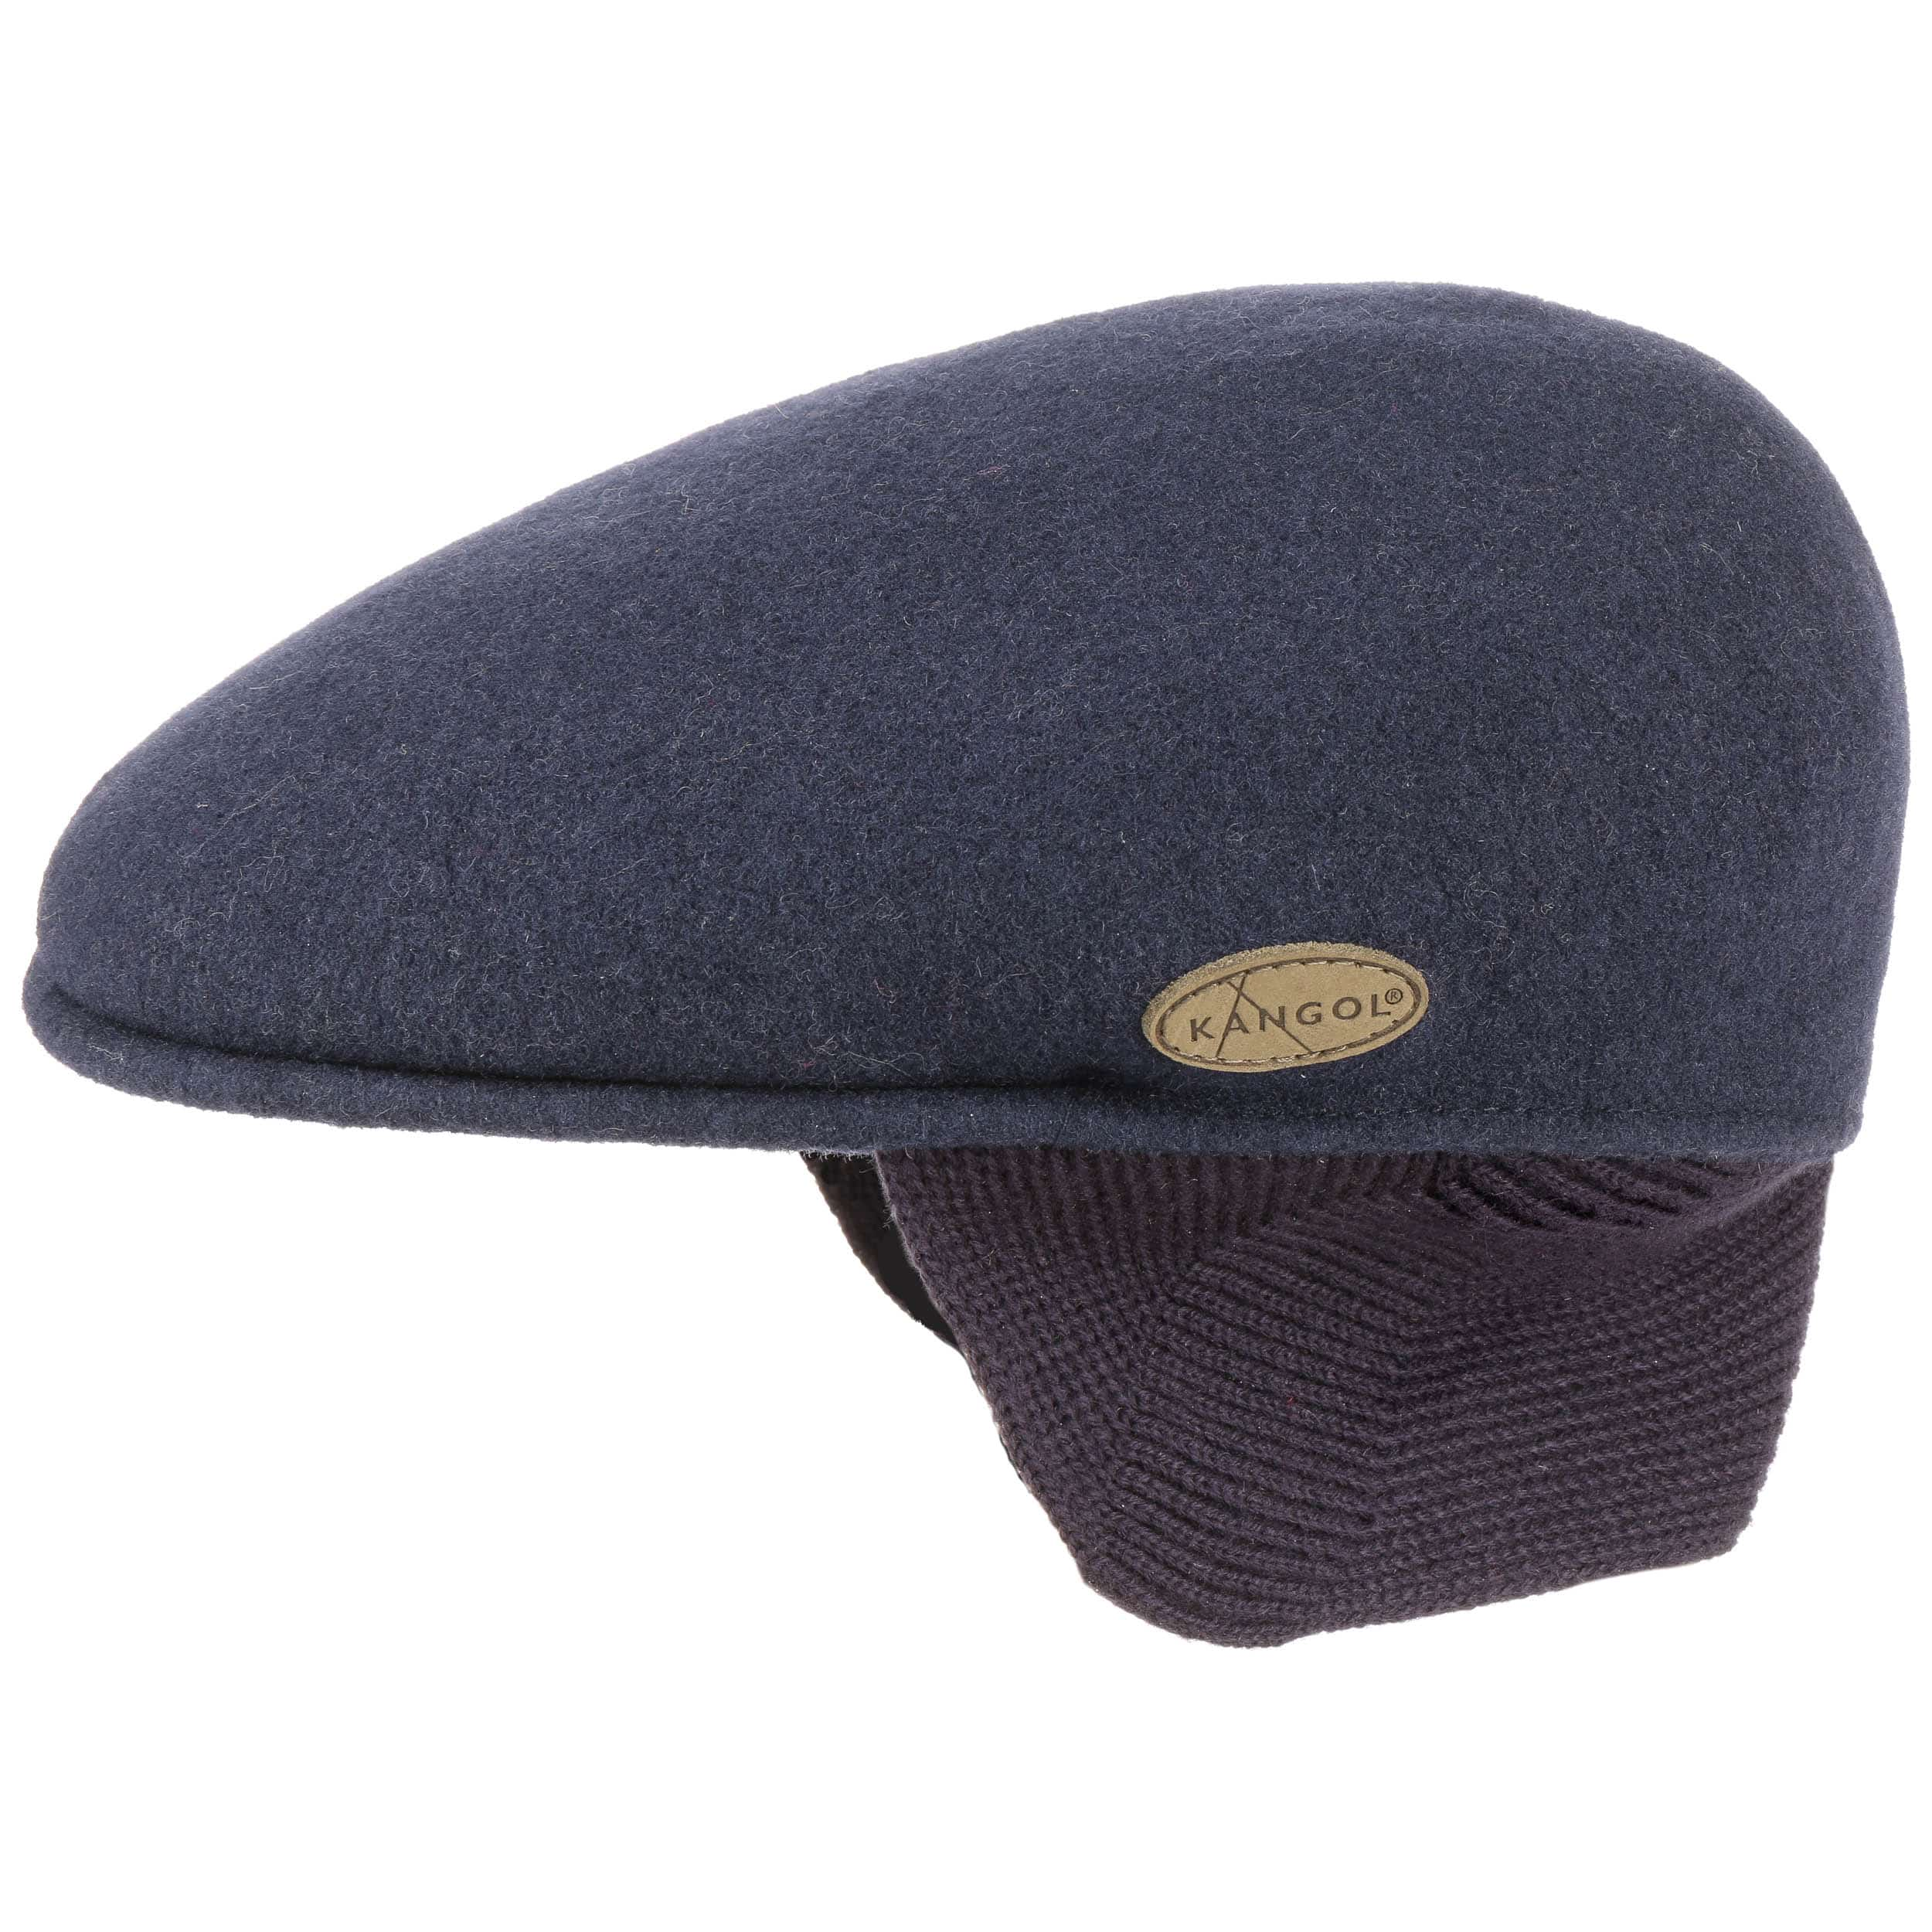 504 Flat Cap with Ear Flaps by Kangol db9d0190277